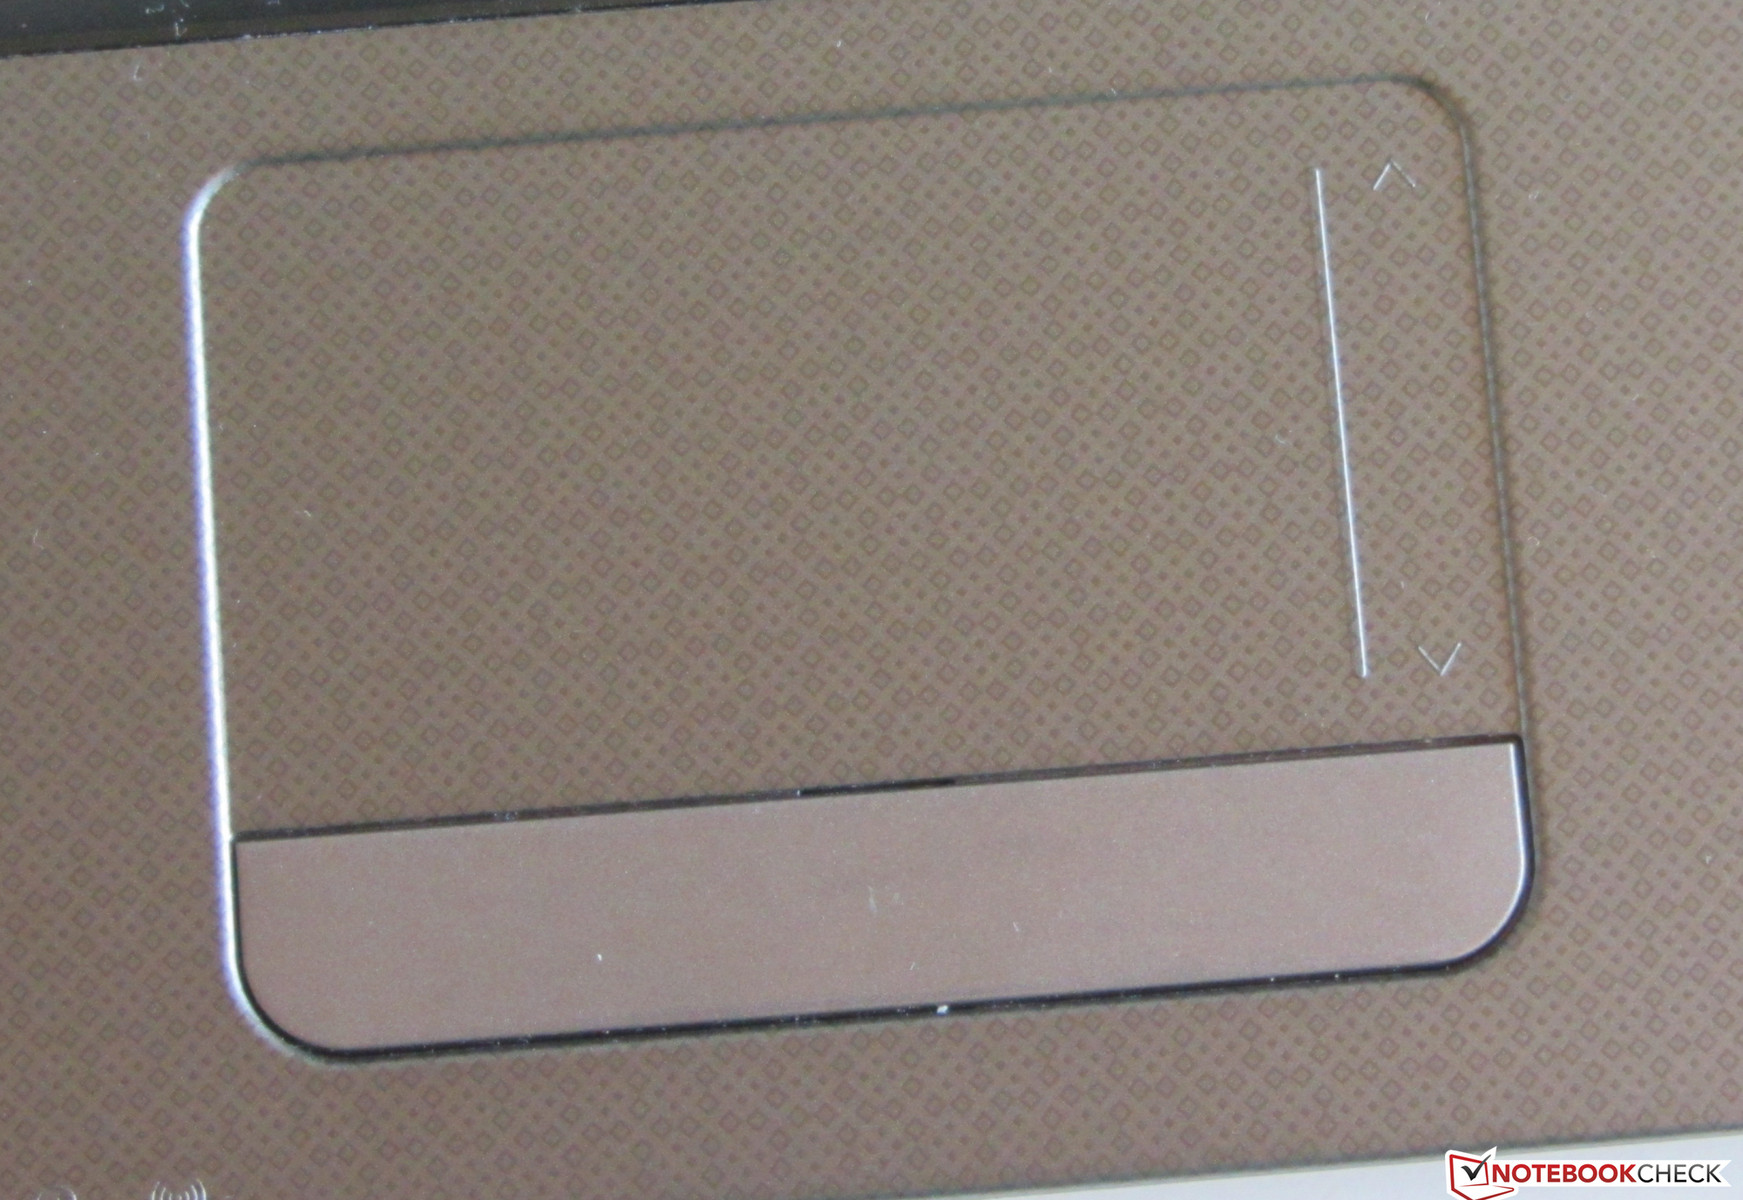 Driver: Packard Bell EasyNote LG81BA Synaptics Touchpad